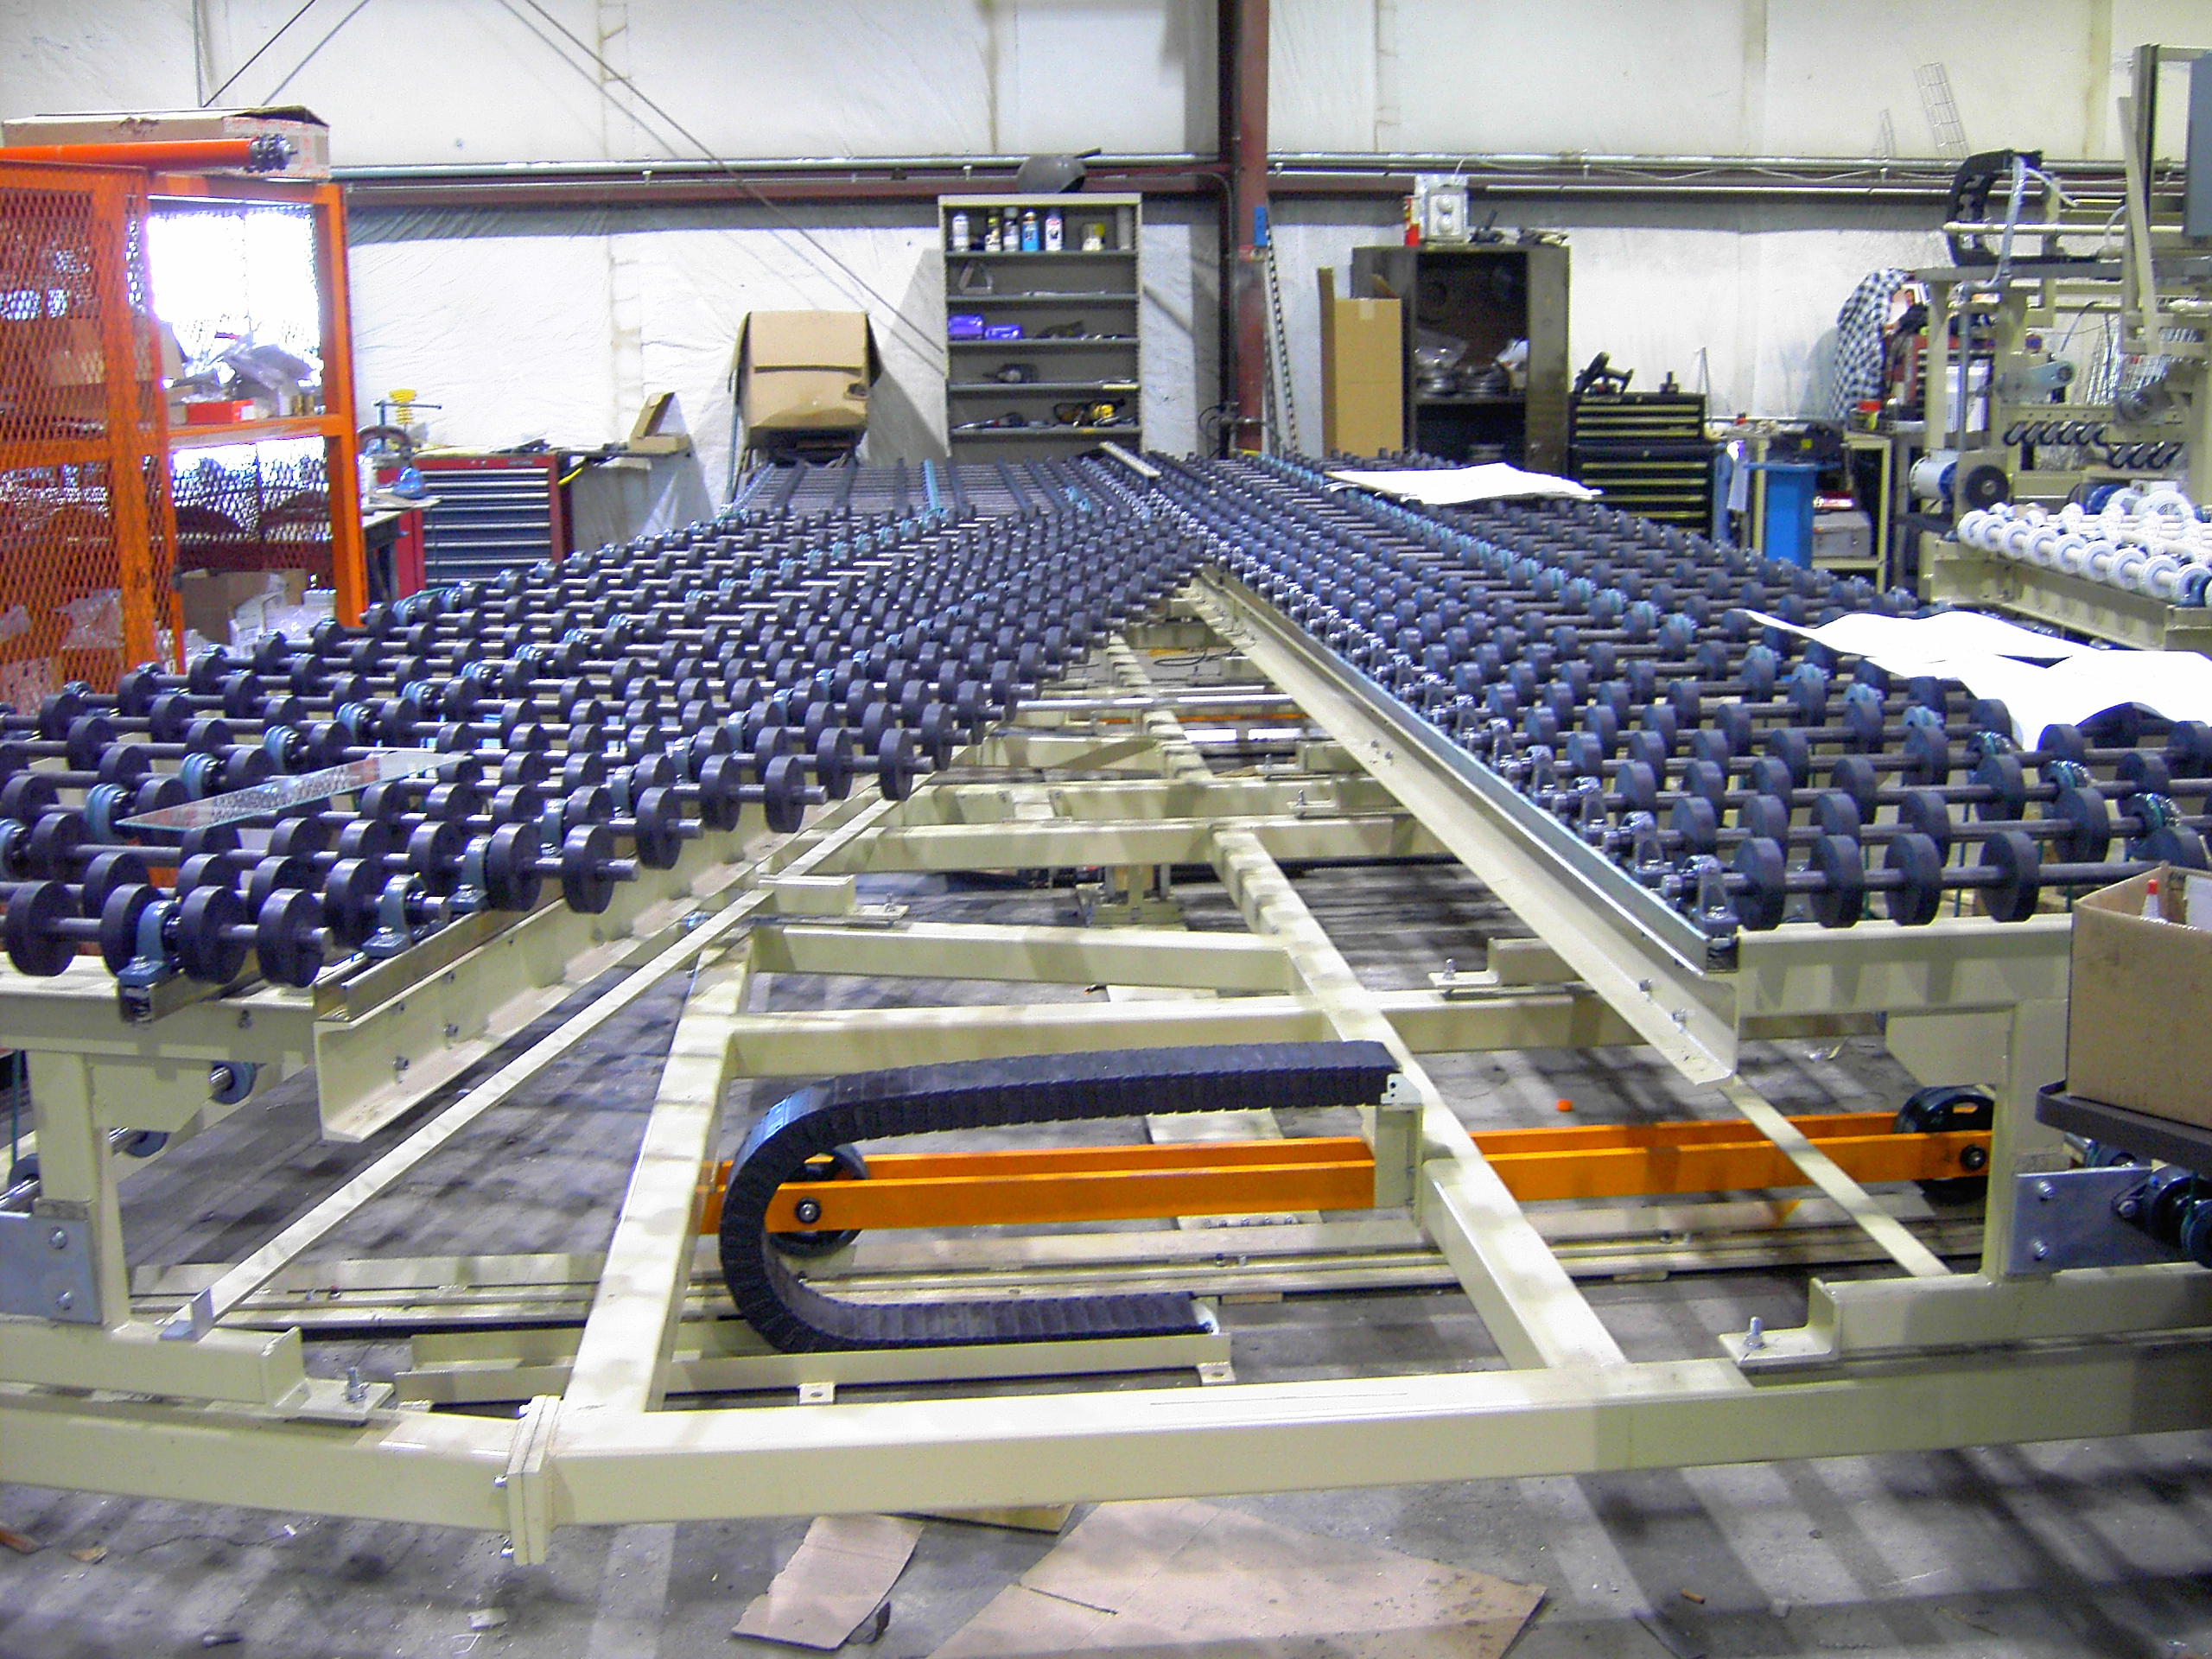 Custom/Specialized Conveyors(ultraviolet, etc.) - Digital StillCamera